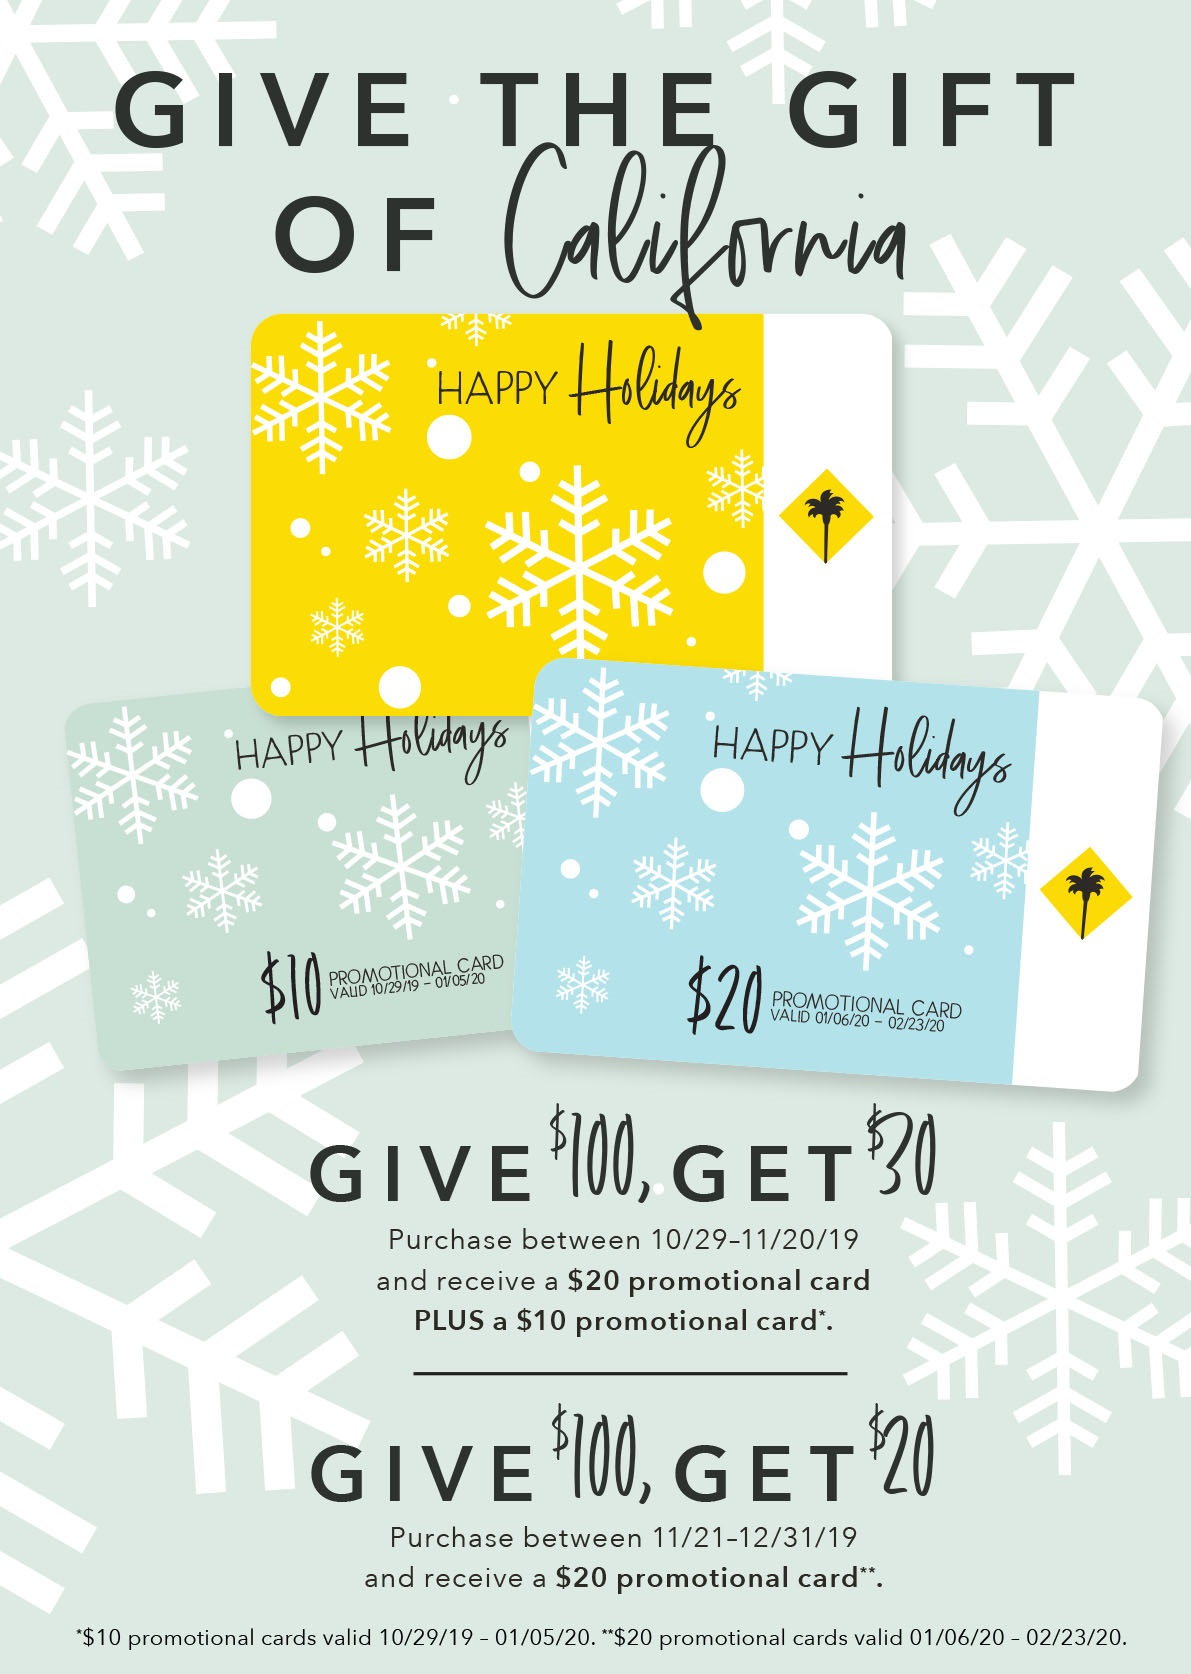 Holiday Gift Card Promo - Give the Gift of California from California Pizza Kitchen